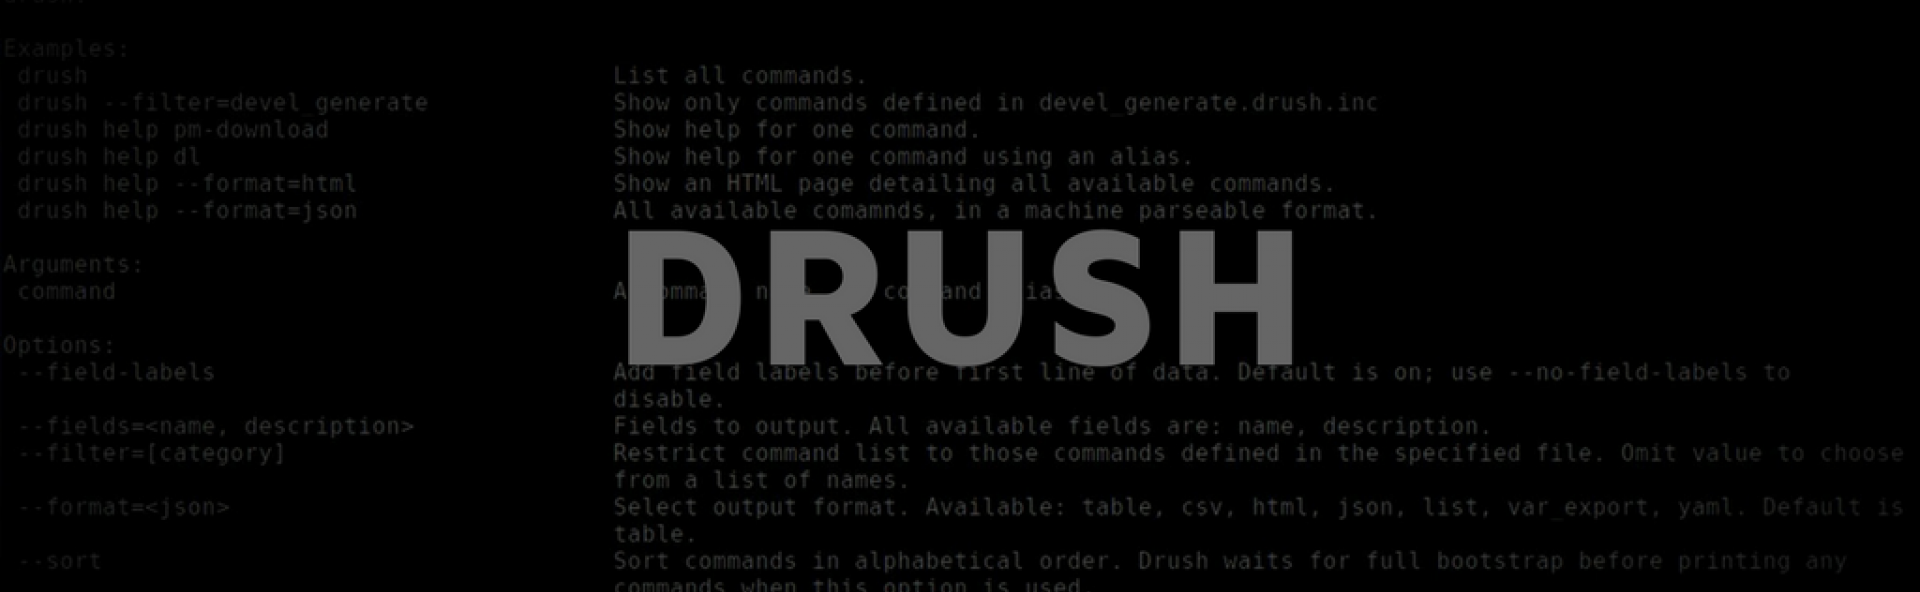 Your own Drush command in Drupal 8 | Droptica Blog